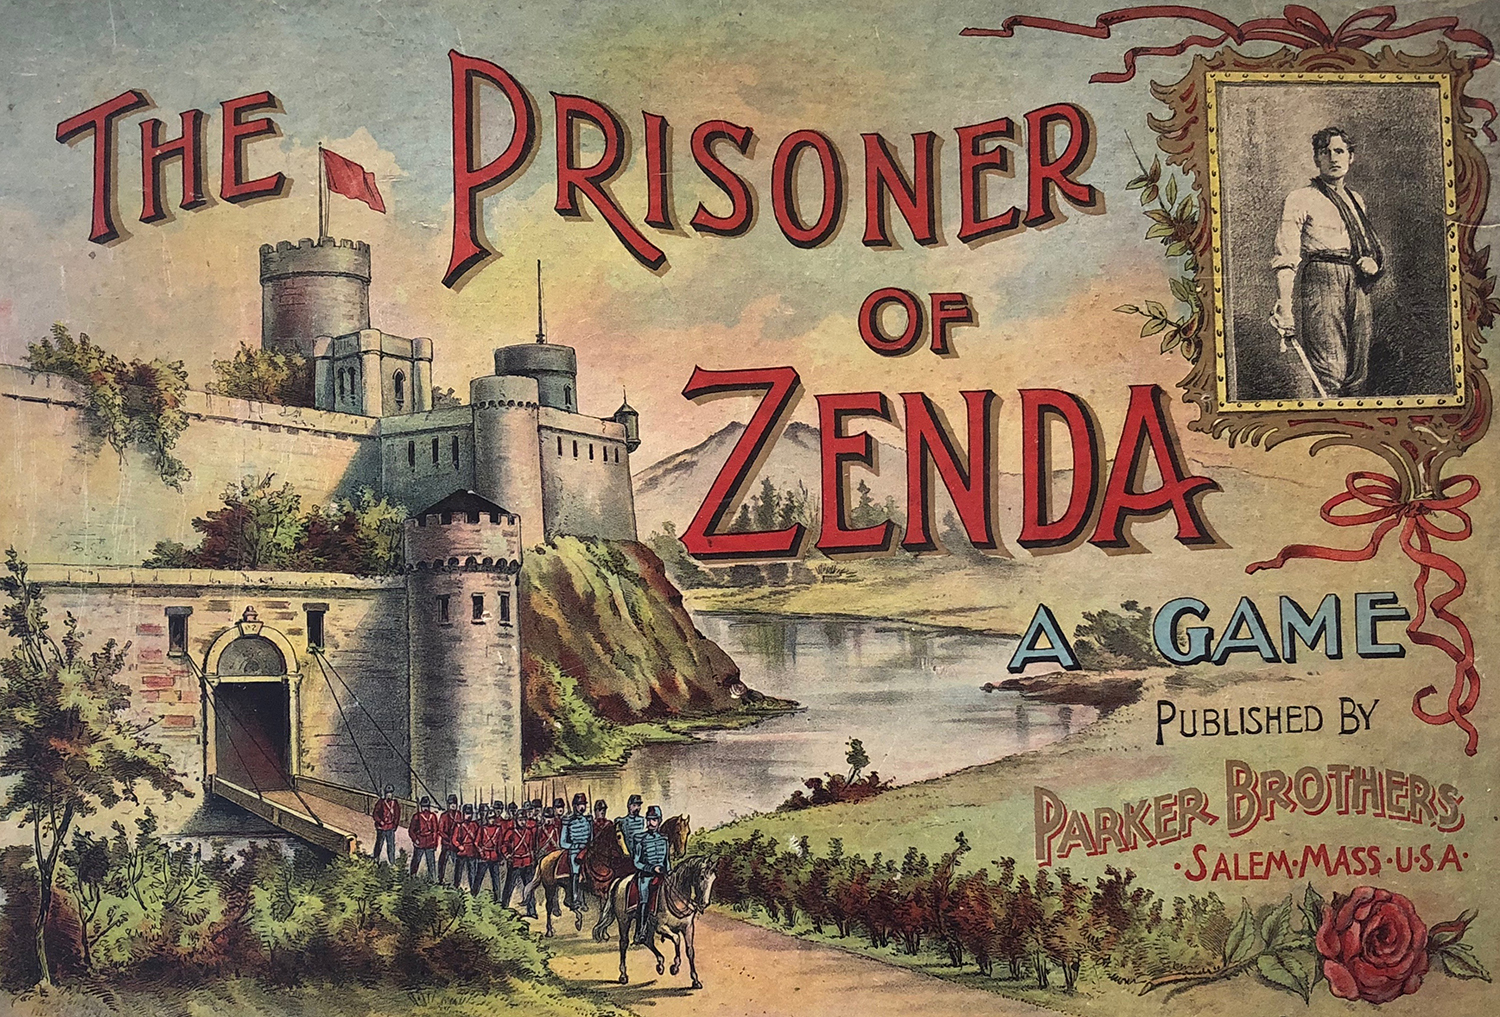 Board game version of The Prisoner of Zenda, 1896.